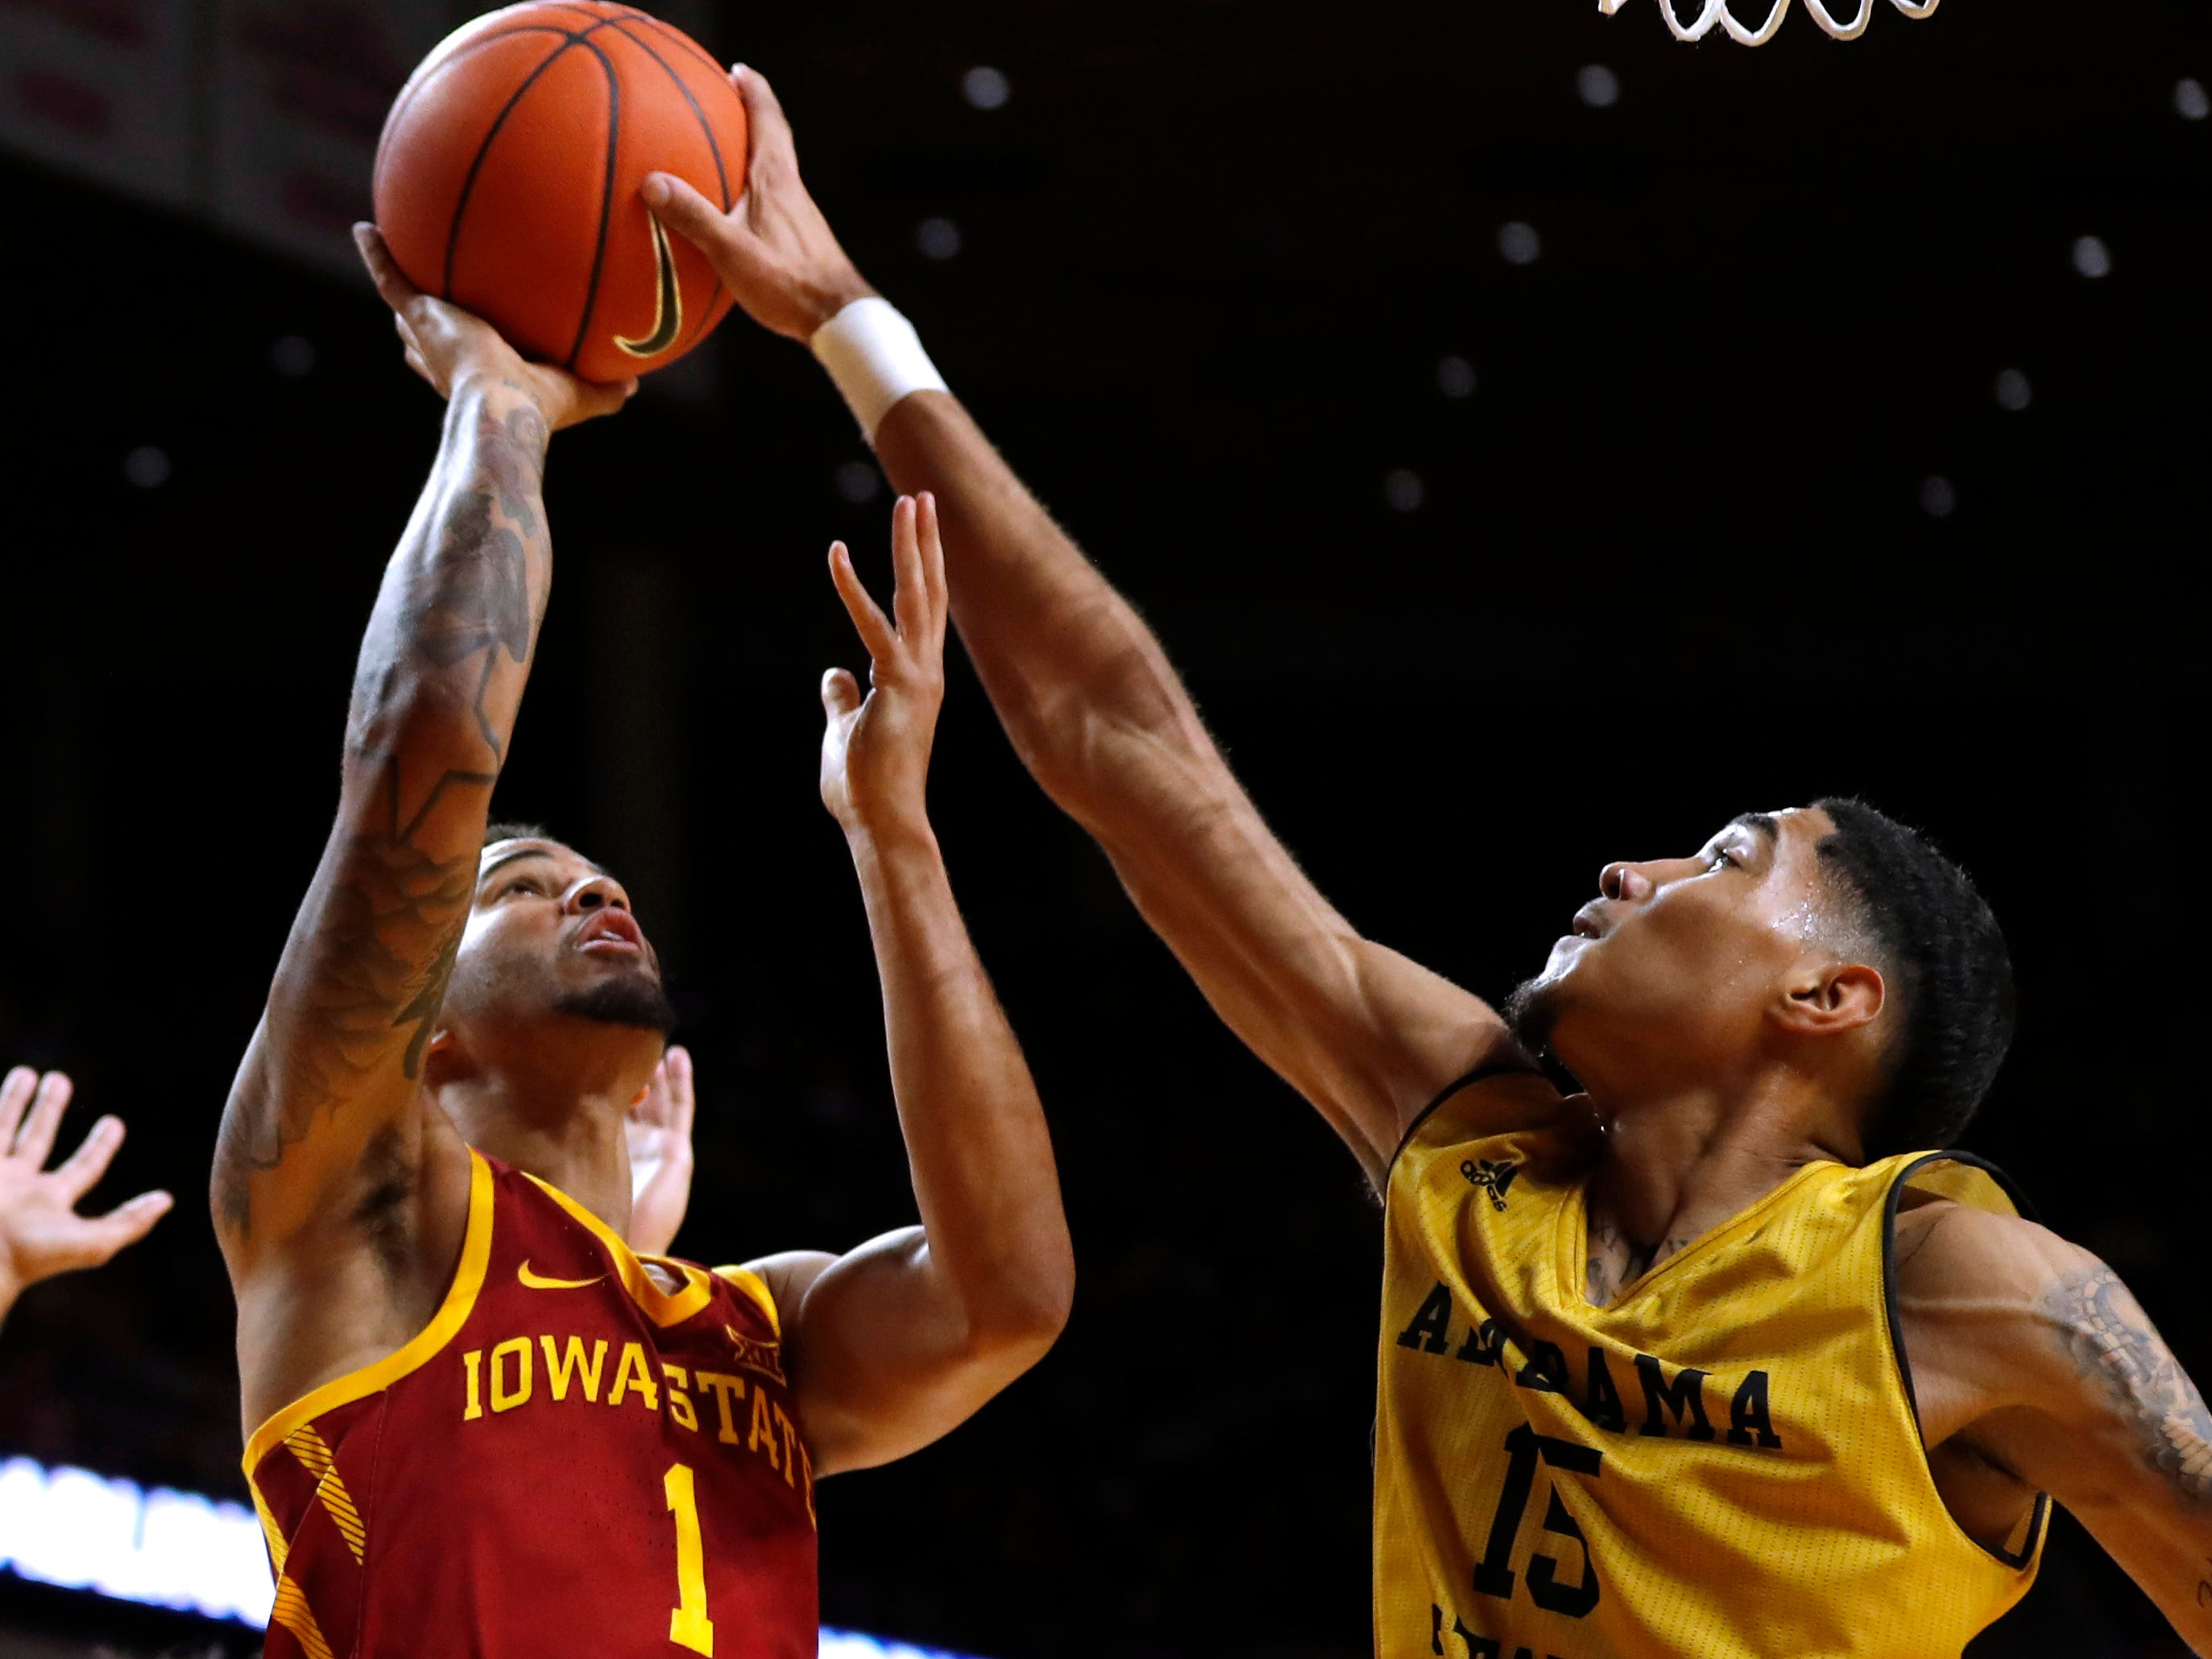 Alabama State forward Fausto Pichardo blocks a shot by Iowa State guard Nick Weiler-Babb, left, during the first half Tuesday in Ames.